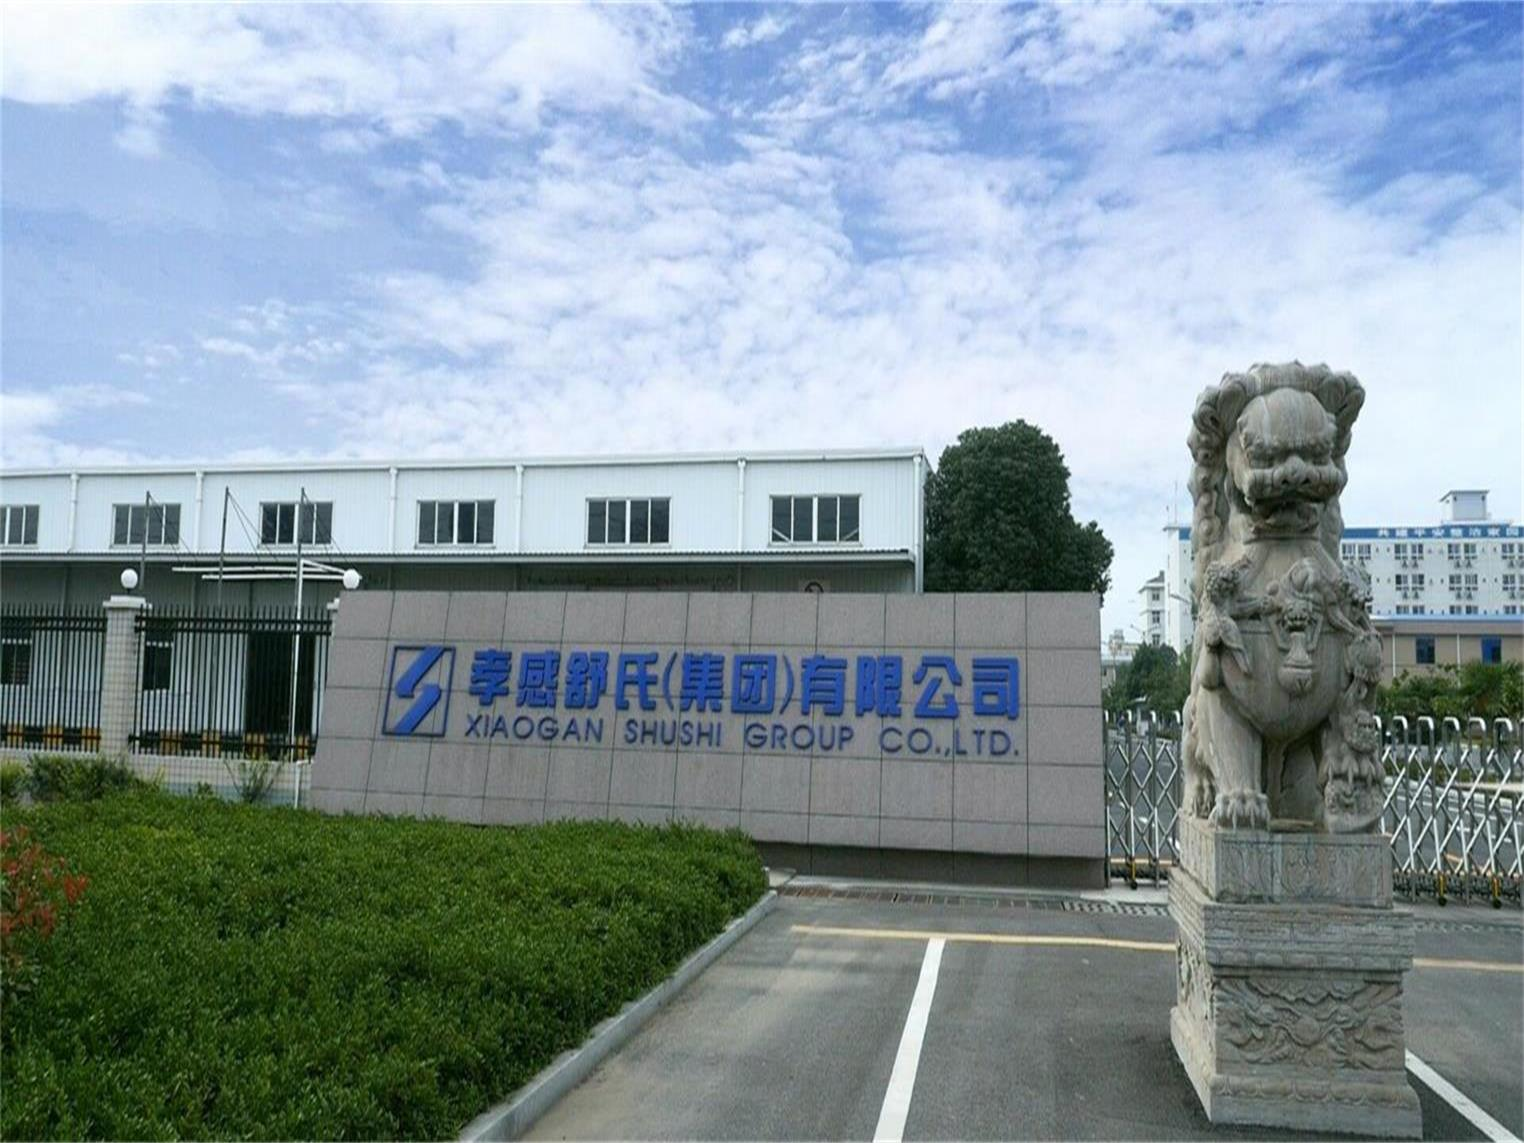 Xiaogan Shushi Group Co., Ltd.